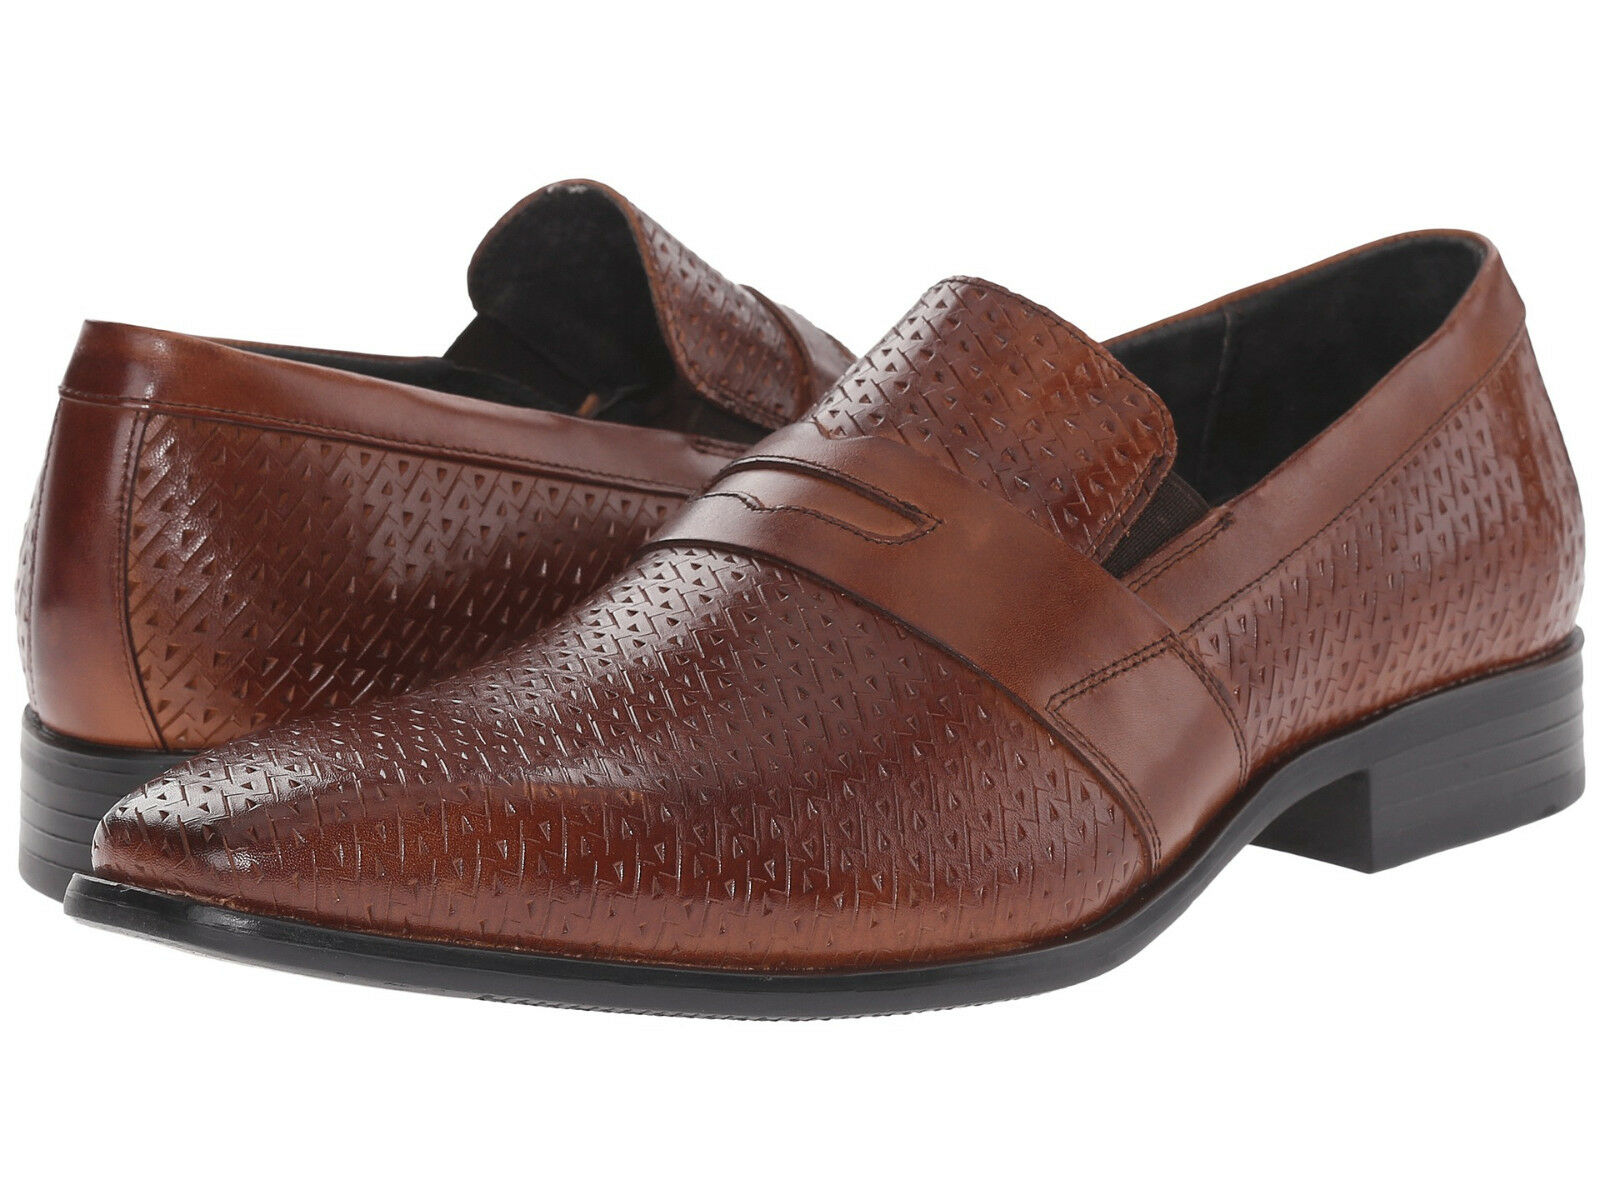 Stacy Adams Mens Marcellus Slip On Business Casual Penny Loafers Dress shoes